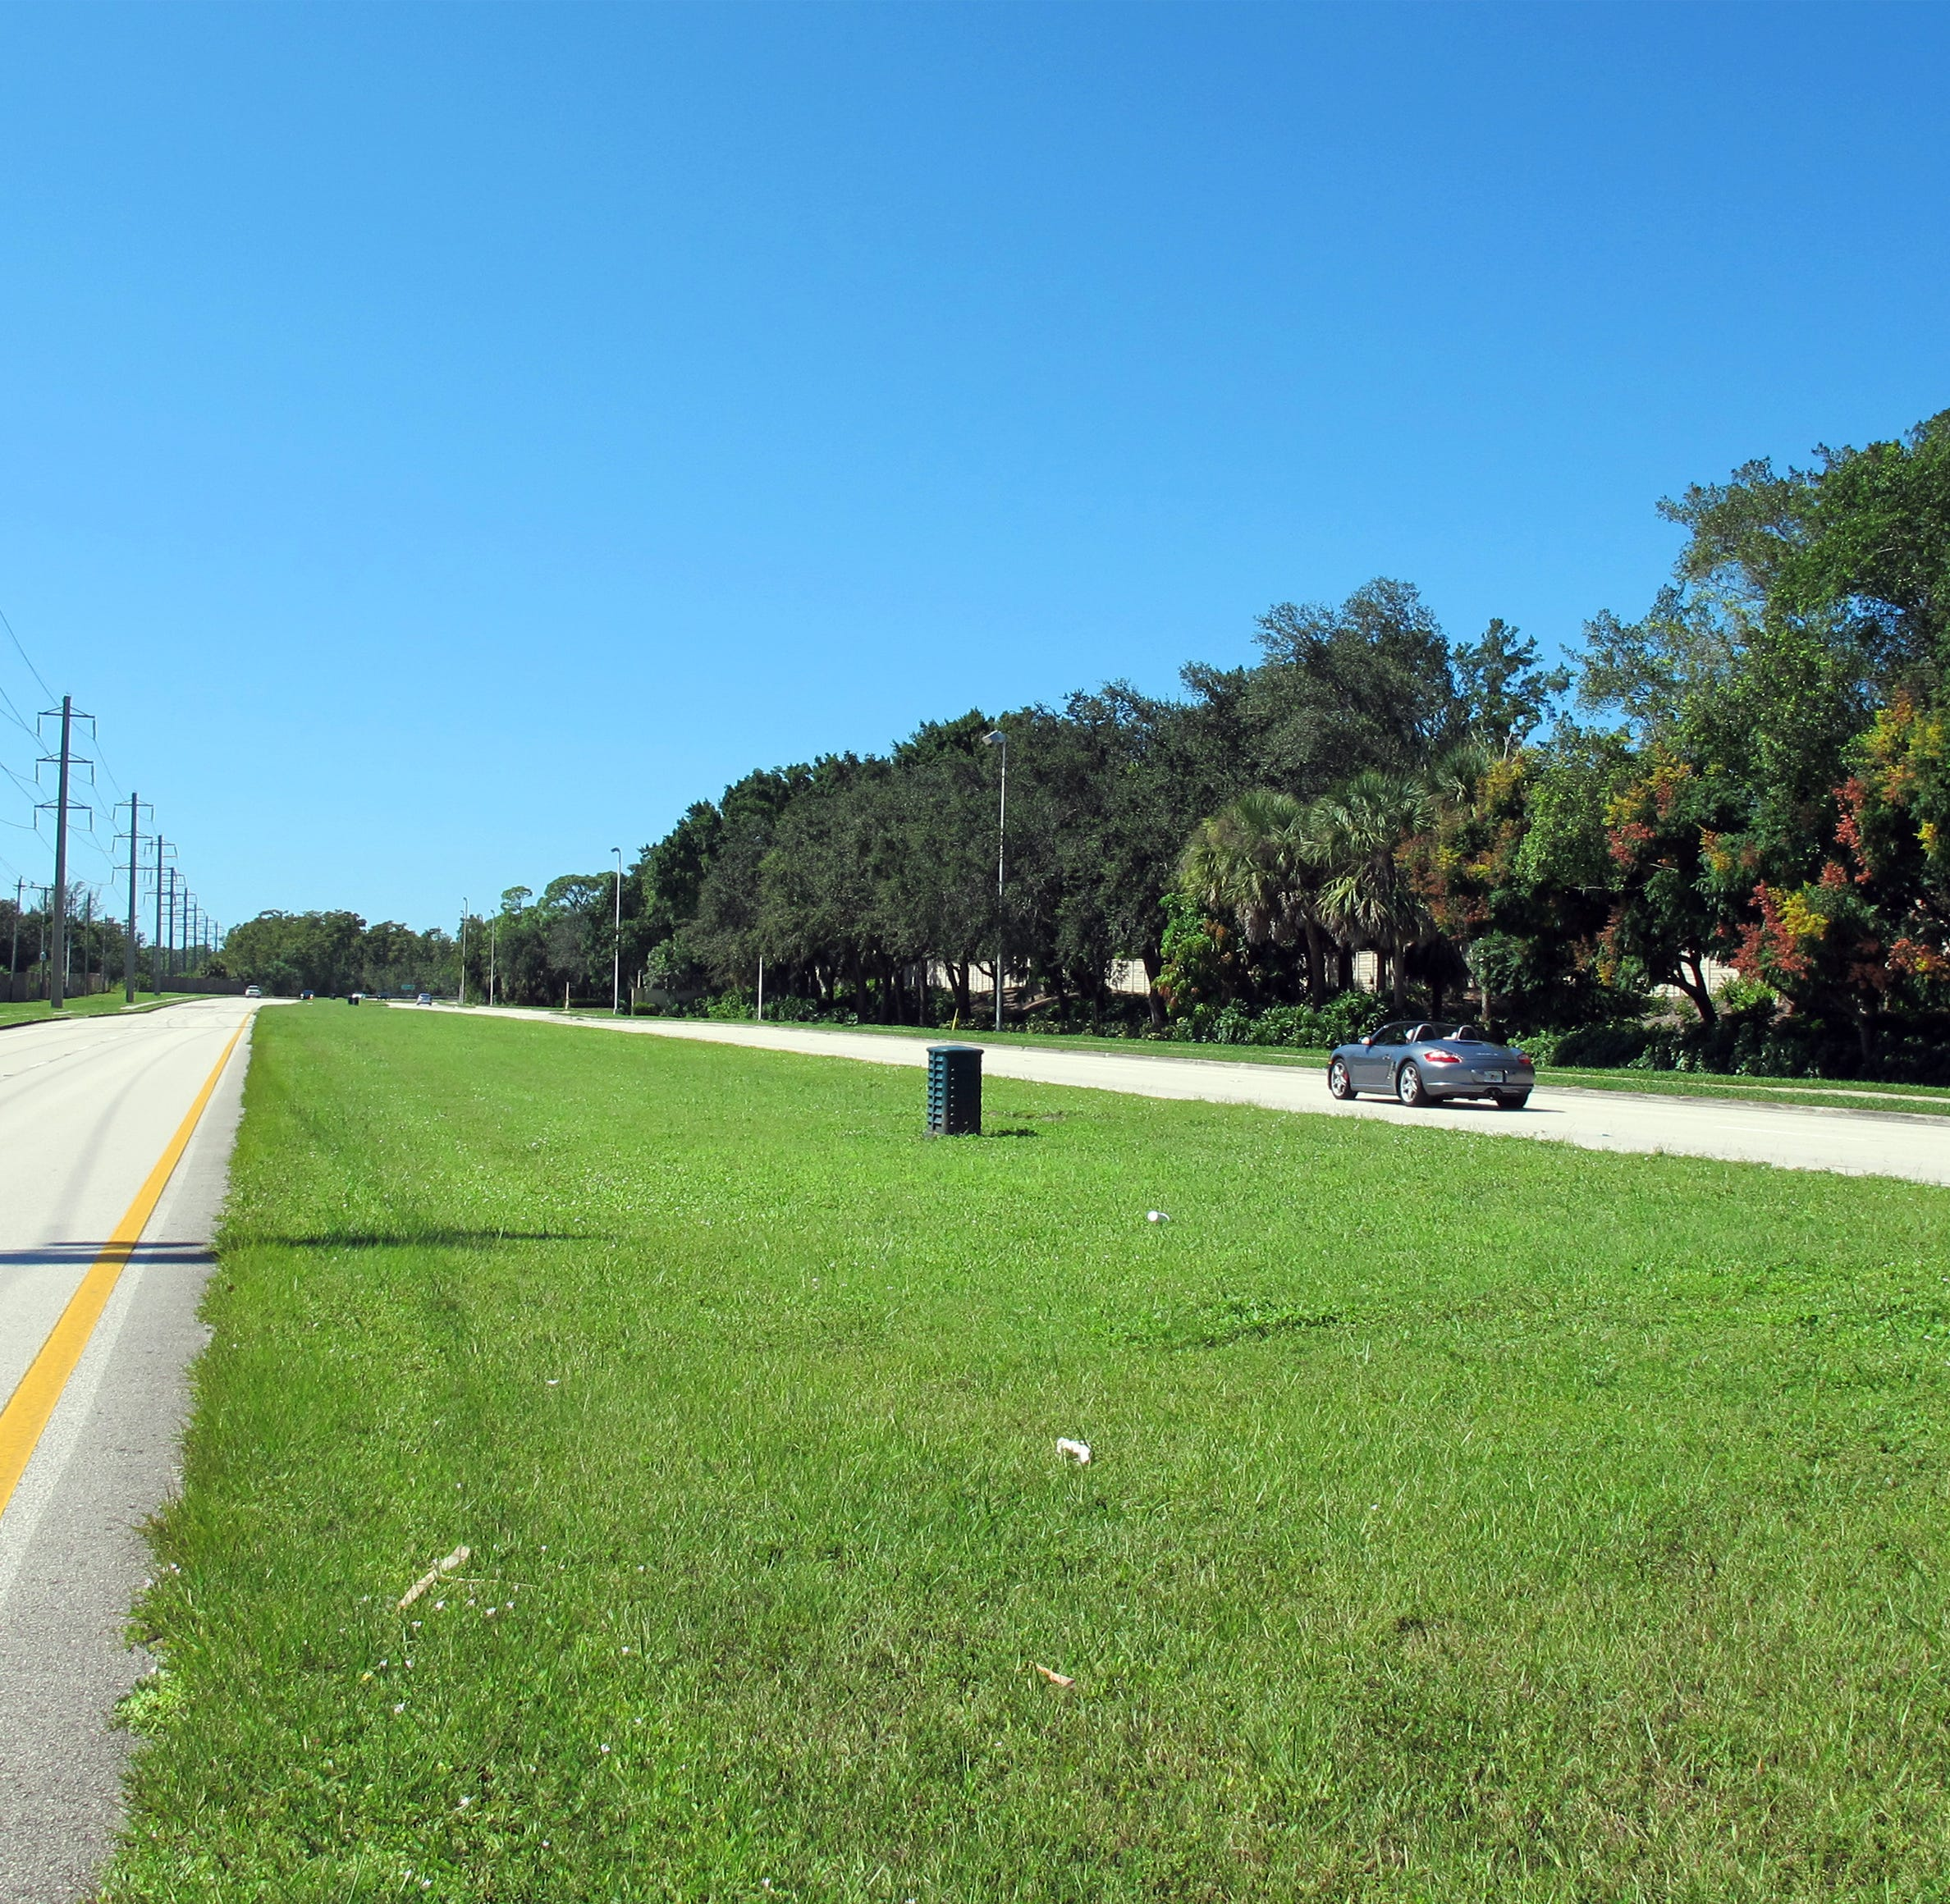 In the Know: Collier County to widen Vanderbilt Beach Road